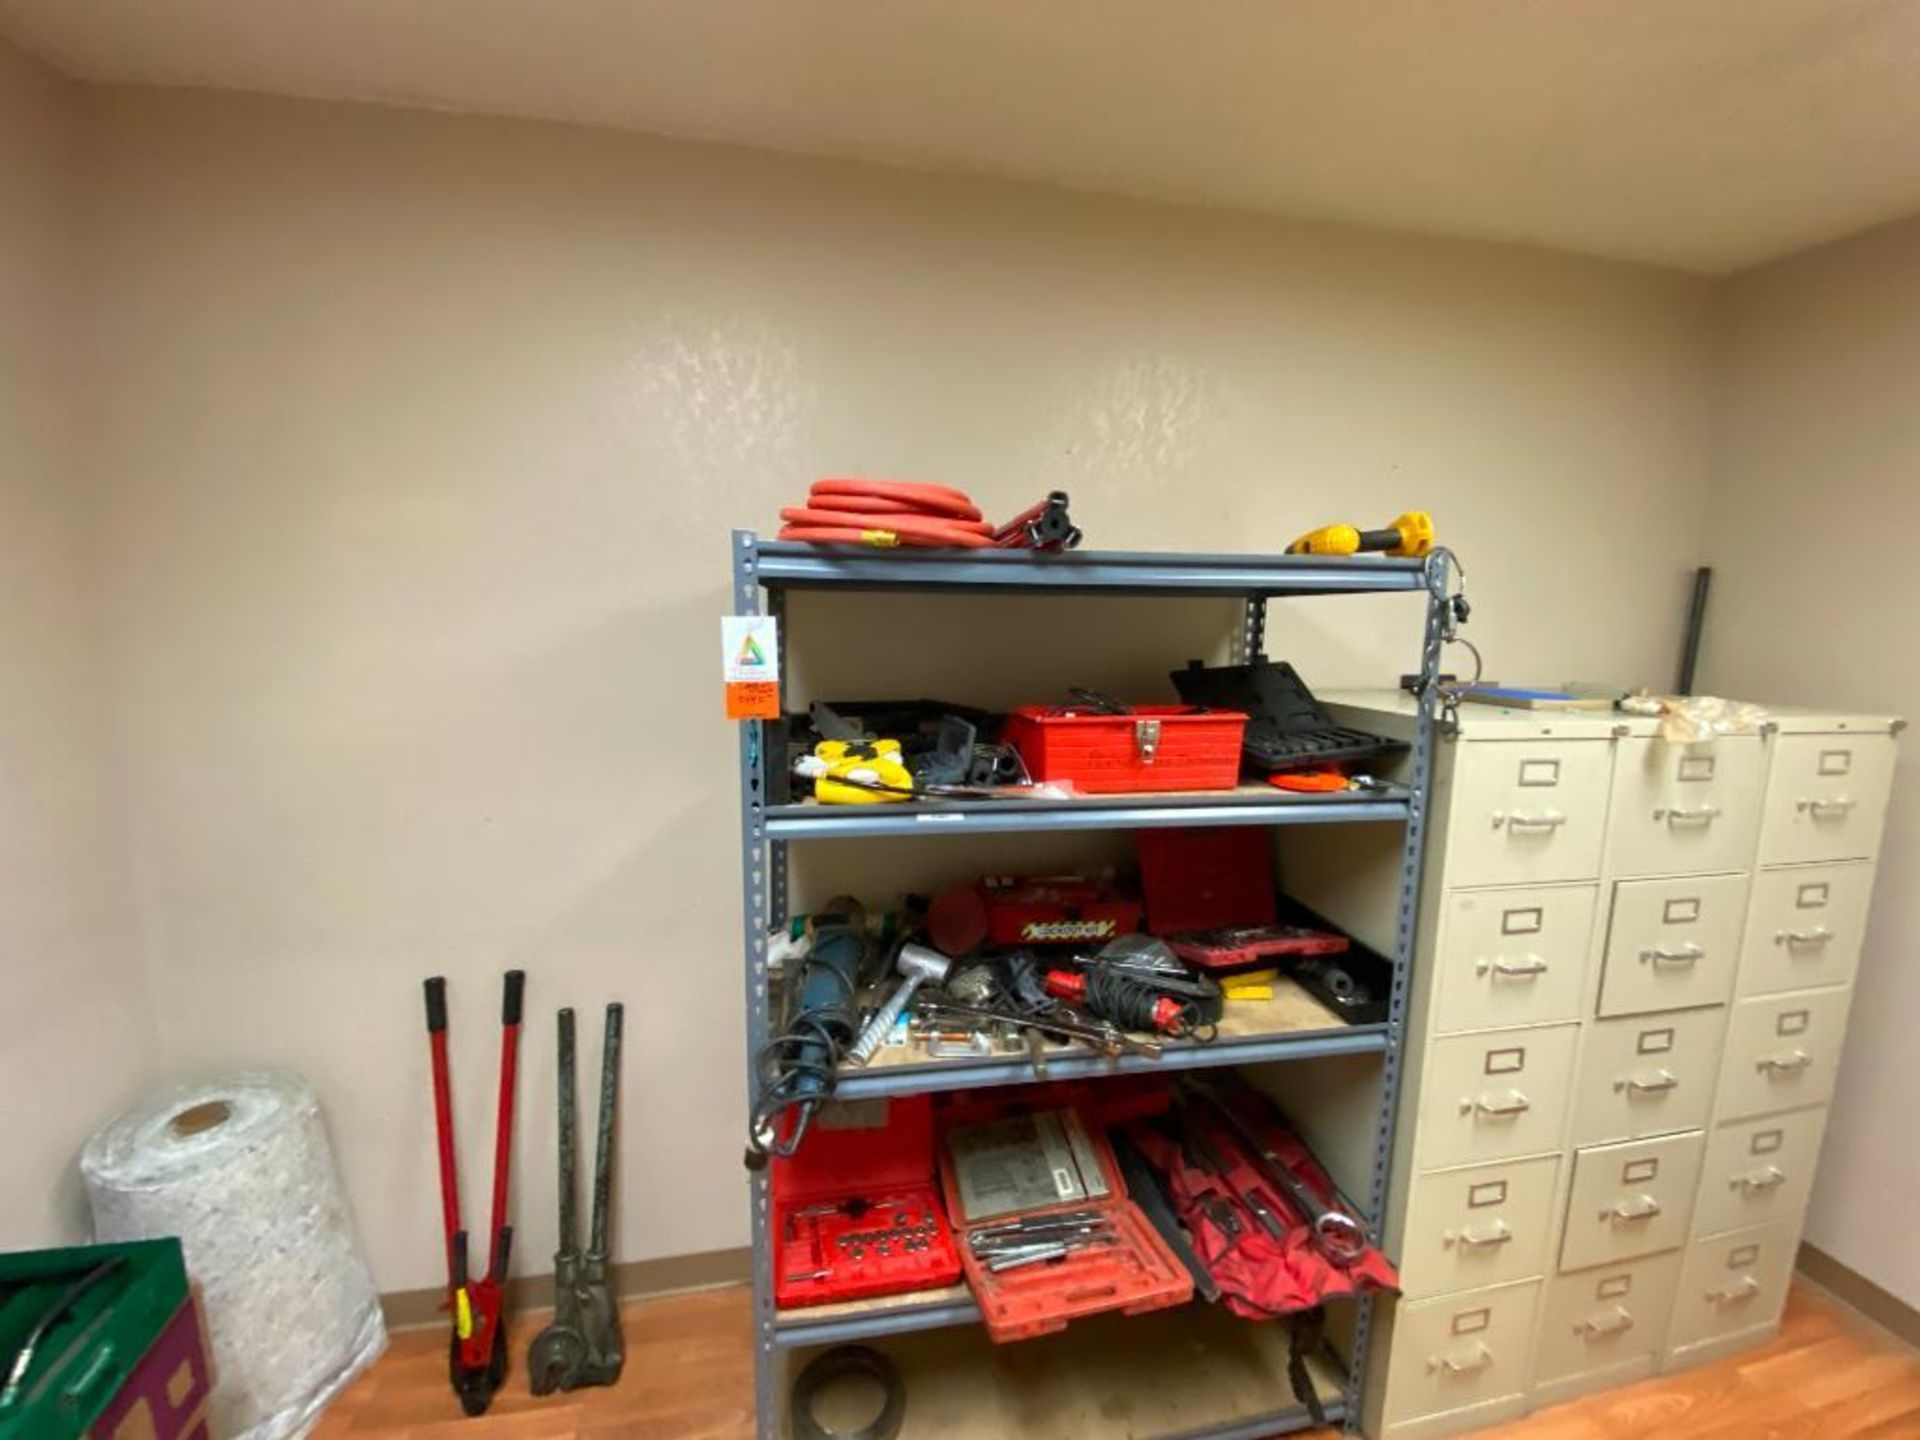 various tools includes bits, large wrenches, lockout tagout kit, grinder